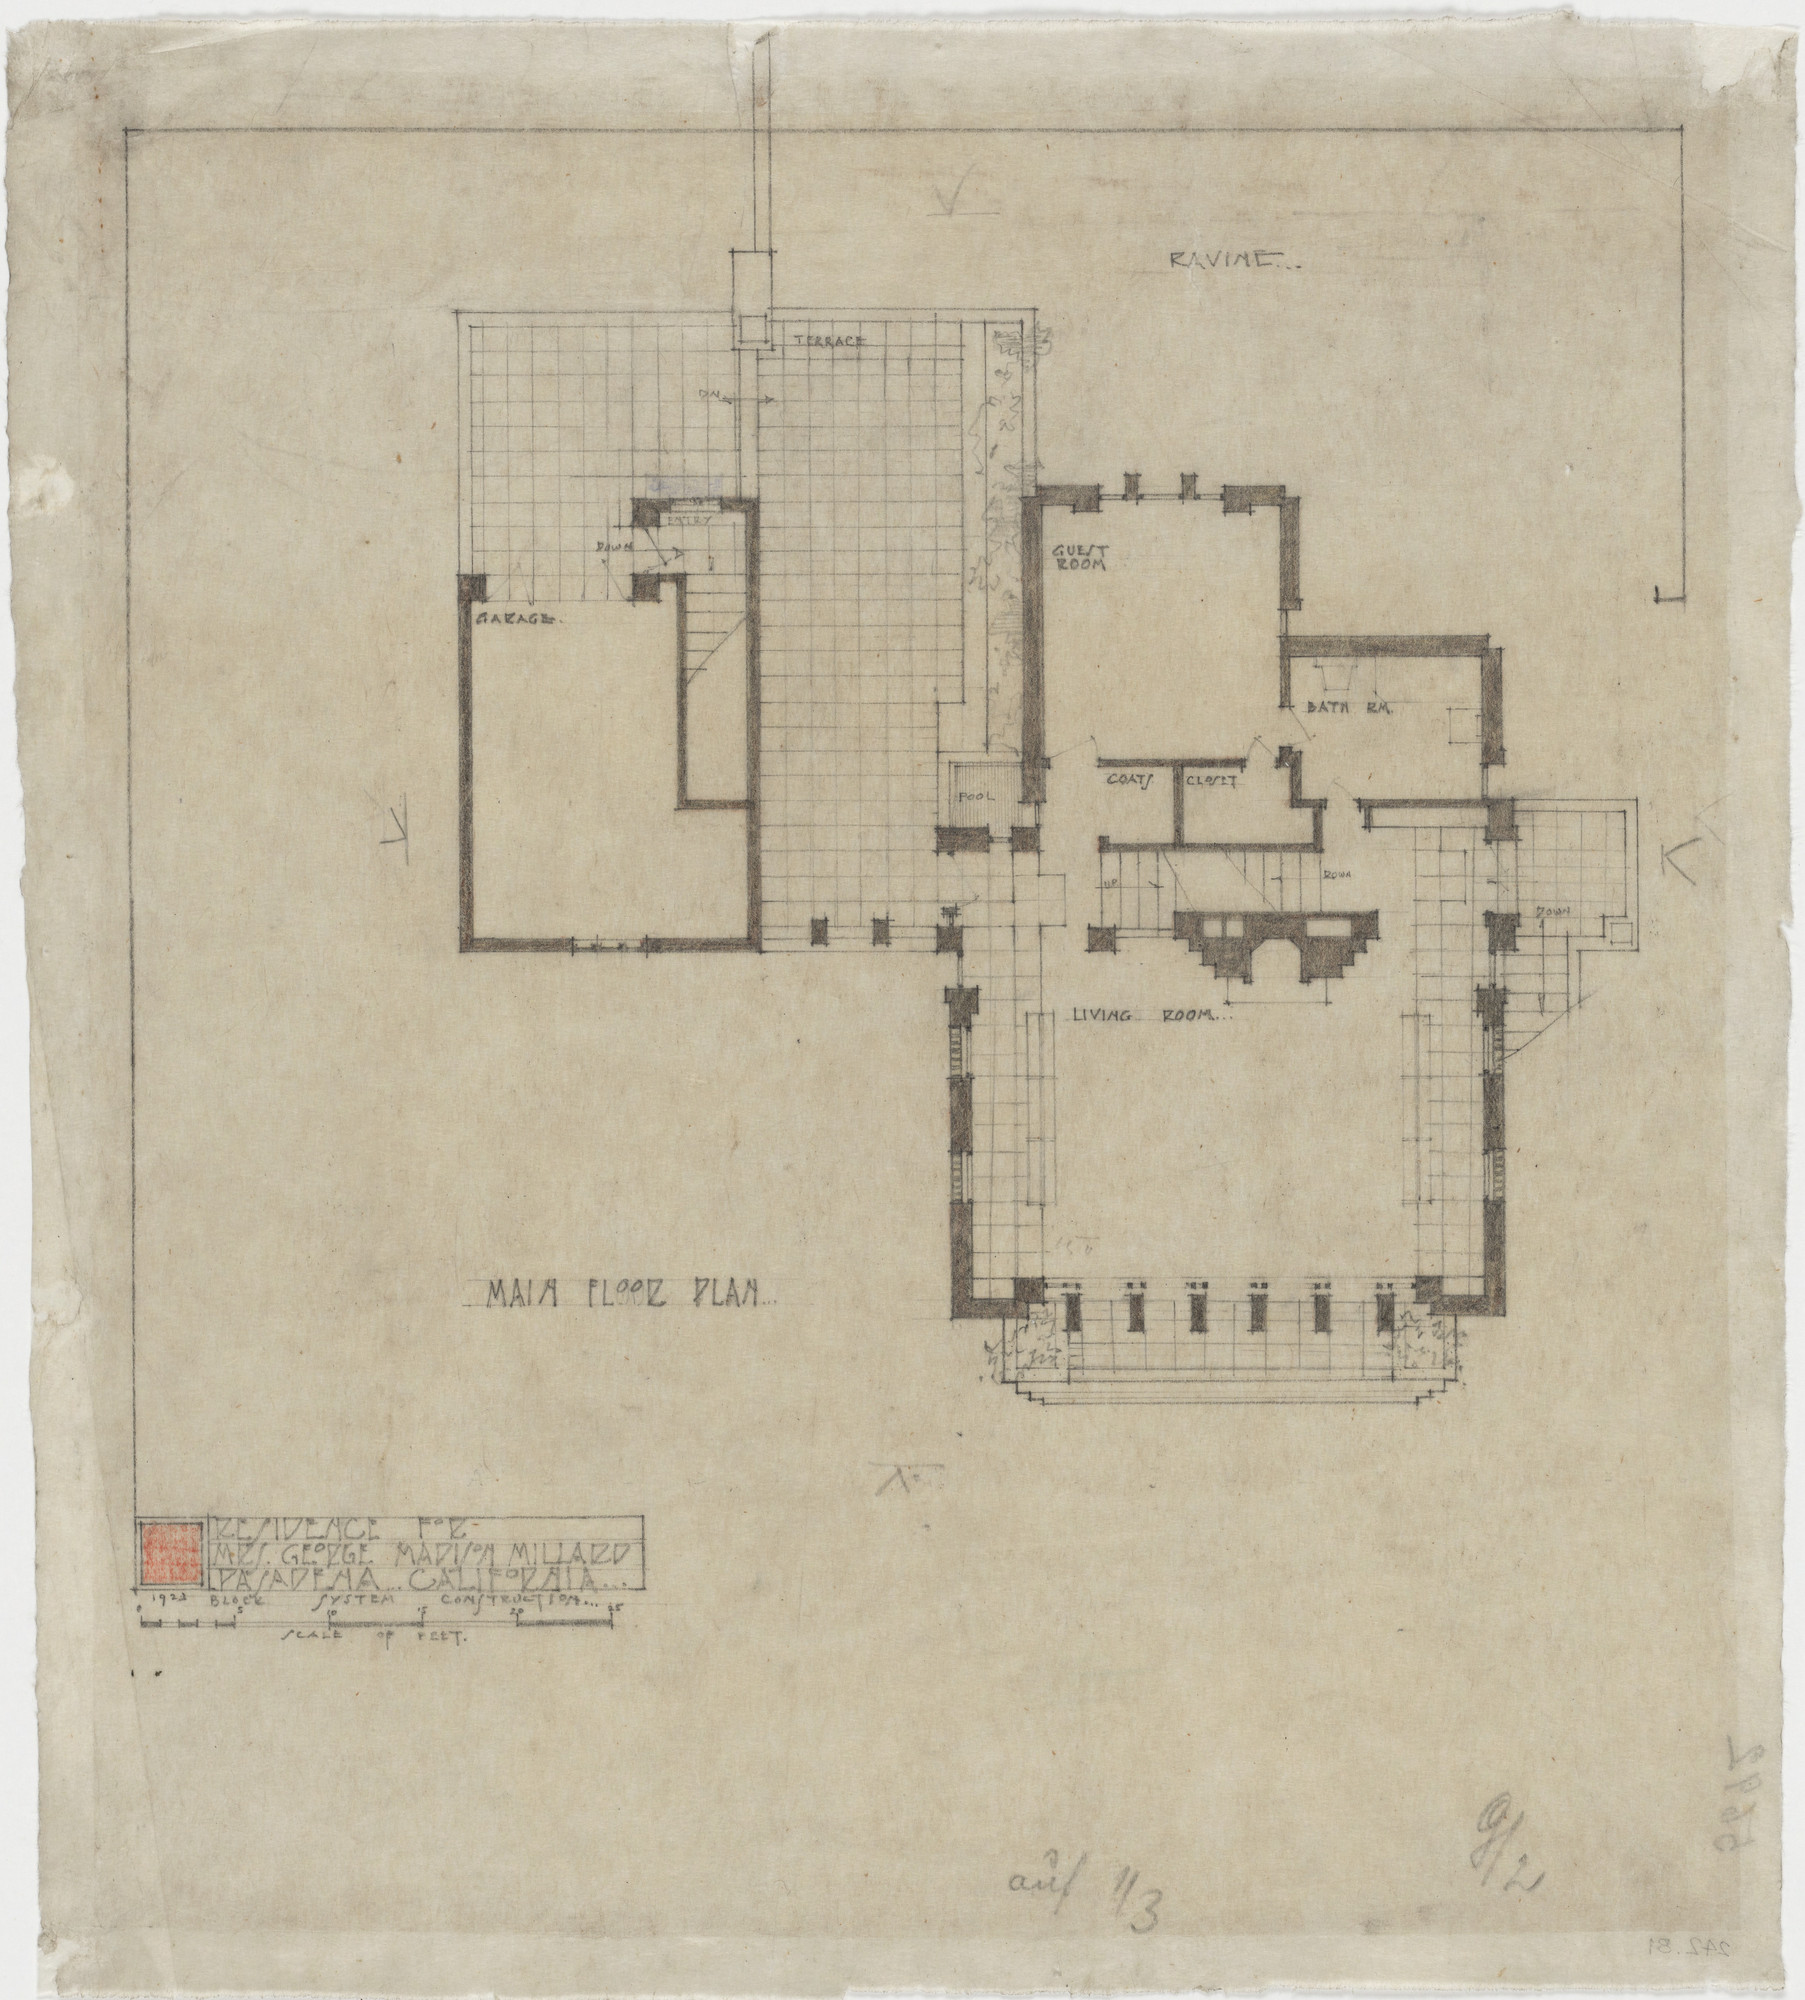 Frank Lloyd Wright. La Miniatura, Mrs. George Madison ... on frank lloyd wright home floor plans, cantilever plans, castle plans, frank lloyd wright furniture plans, wright house drawings, frank lloyd wright building plans, wright medical, frank lloyd wright site plans, frank lloyd wright inspired home plans, blueprints for houses with open floor plans, wright style home plans,